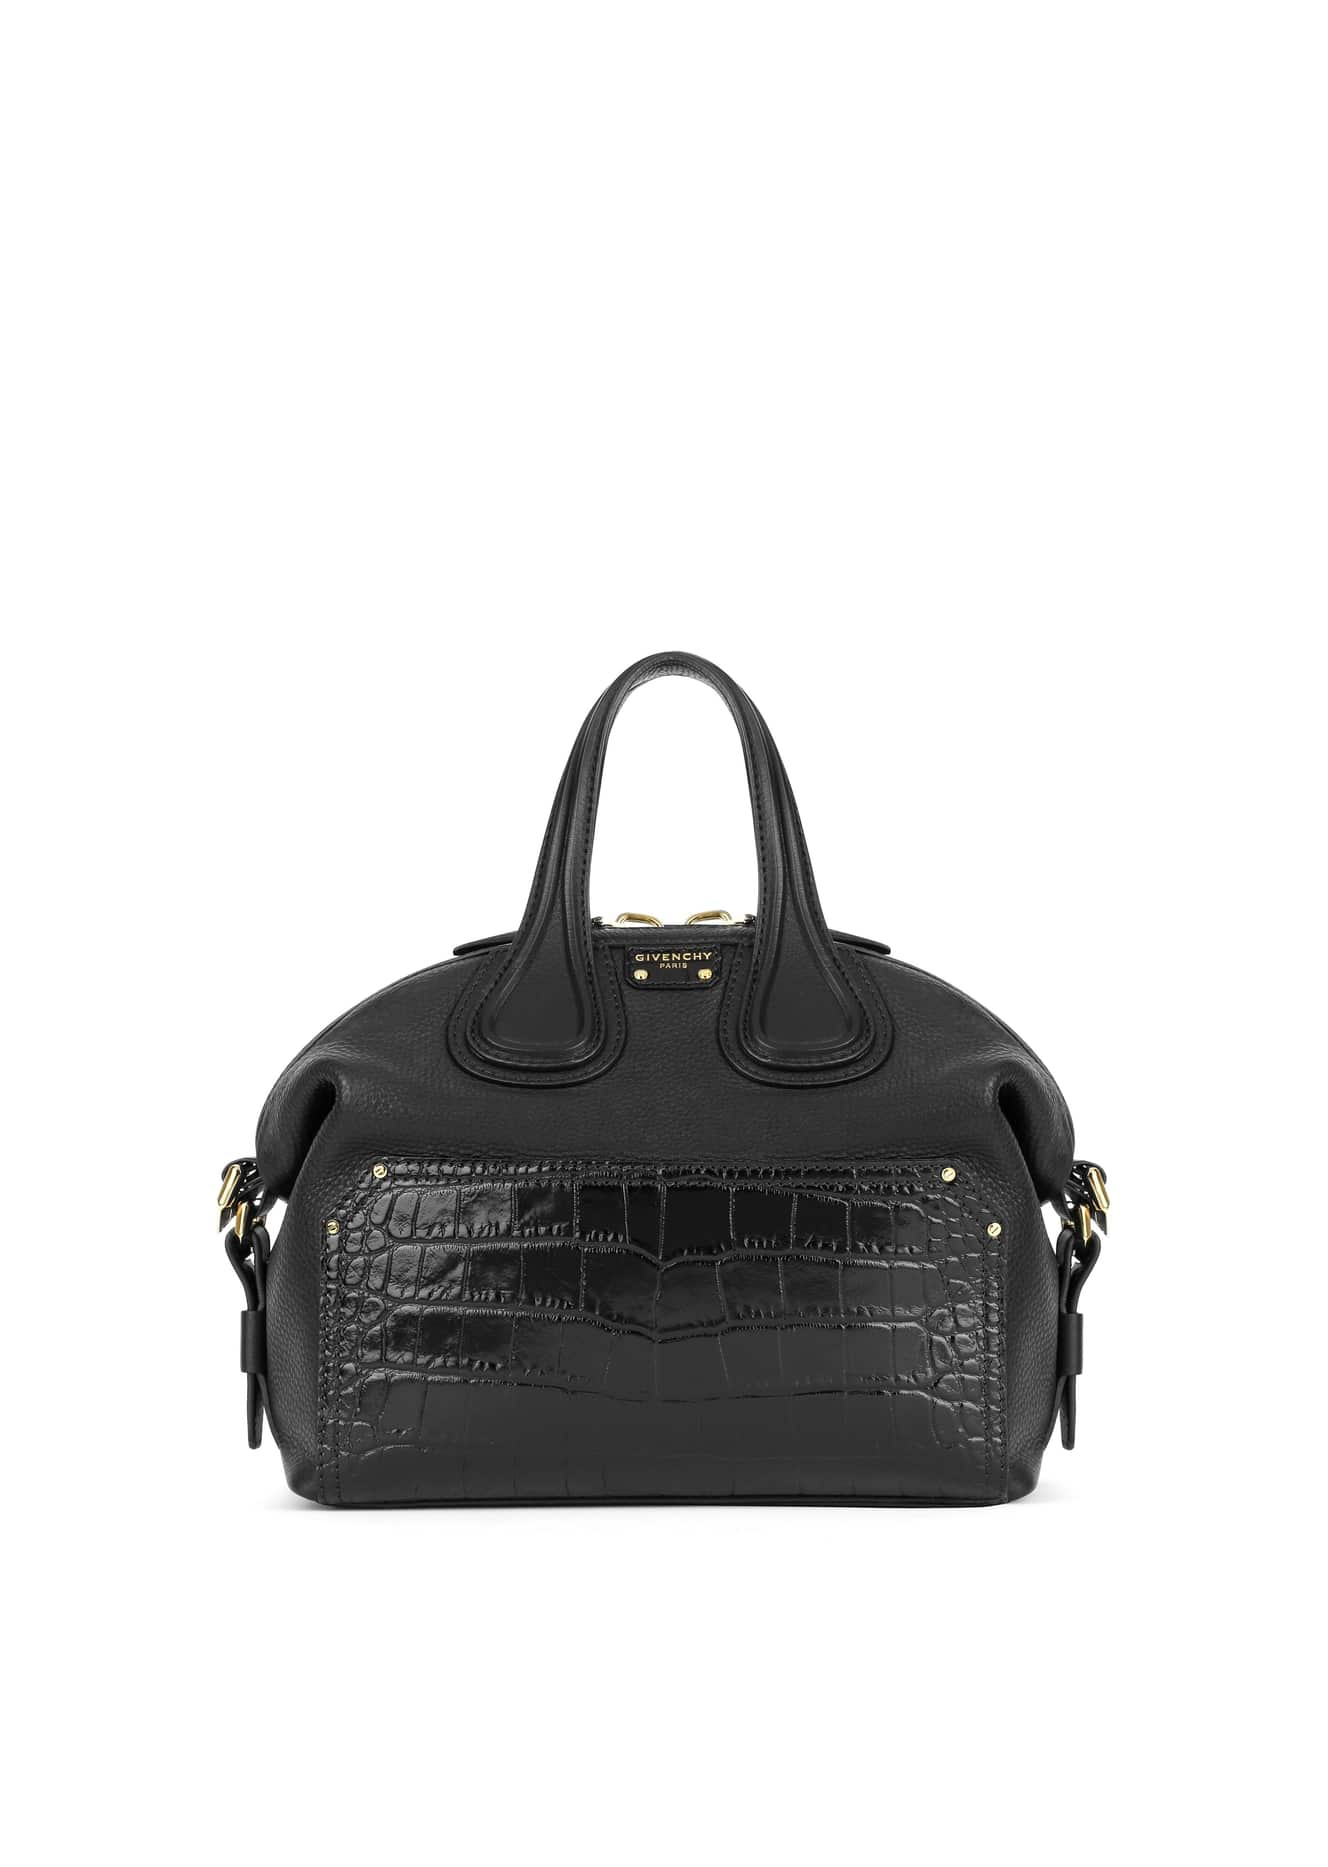 48d681f37f24 ... Givenchy Black Embossed Crocodile Patch Nightingale Small Bag purchase  cheap dea59 eacd2 ...